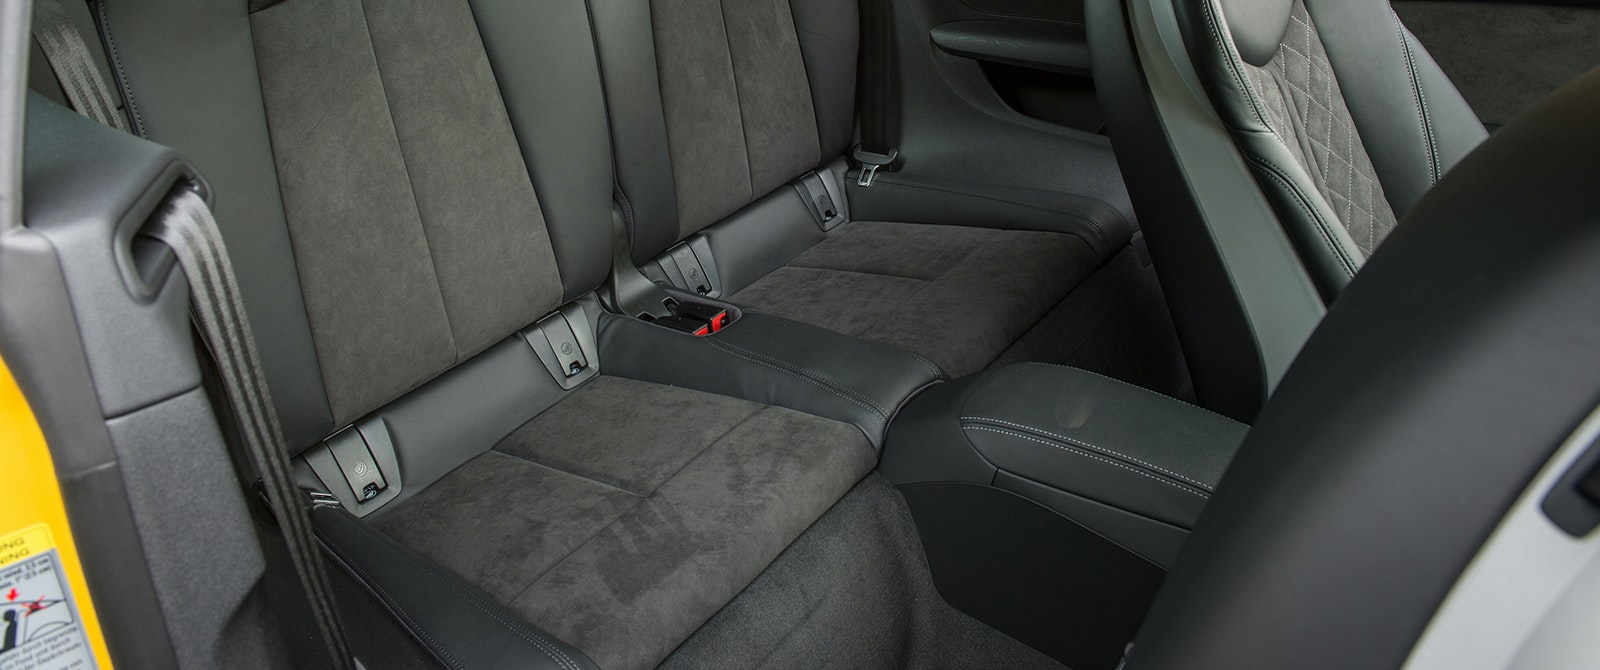 Merveilleux Alcantara Is A Suede Like Material That Youu0027ll Find Covering Seats, Interior  Trim And Steering Wheels. It Was Developed In The 1970s As A Durable And ...